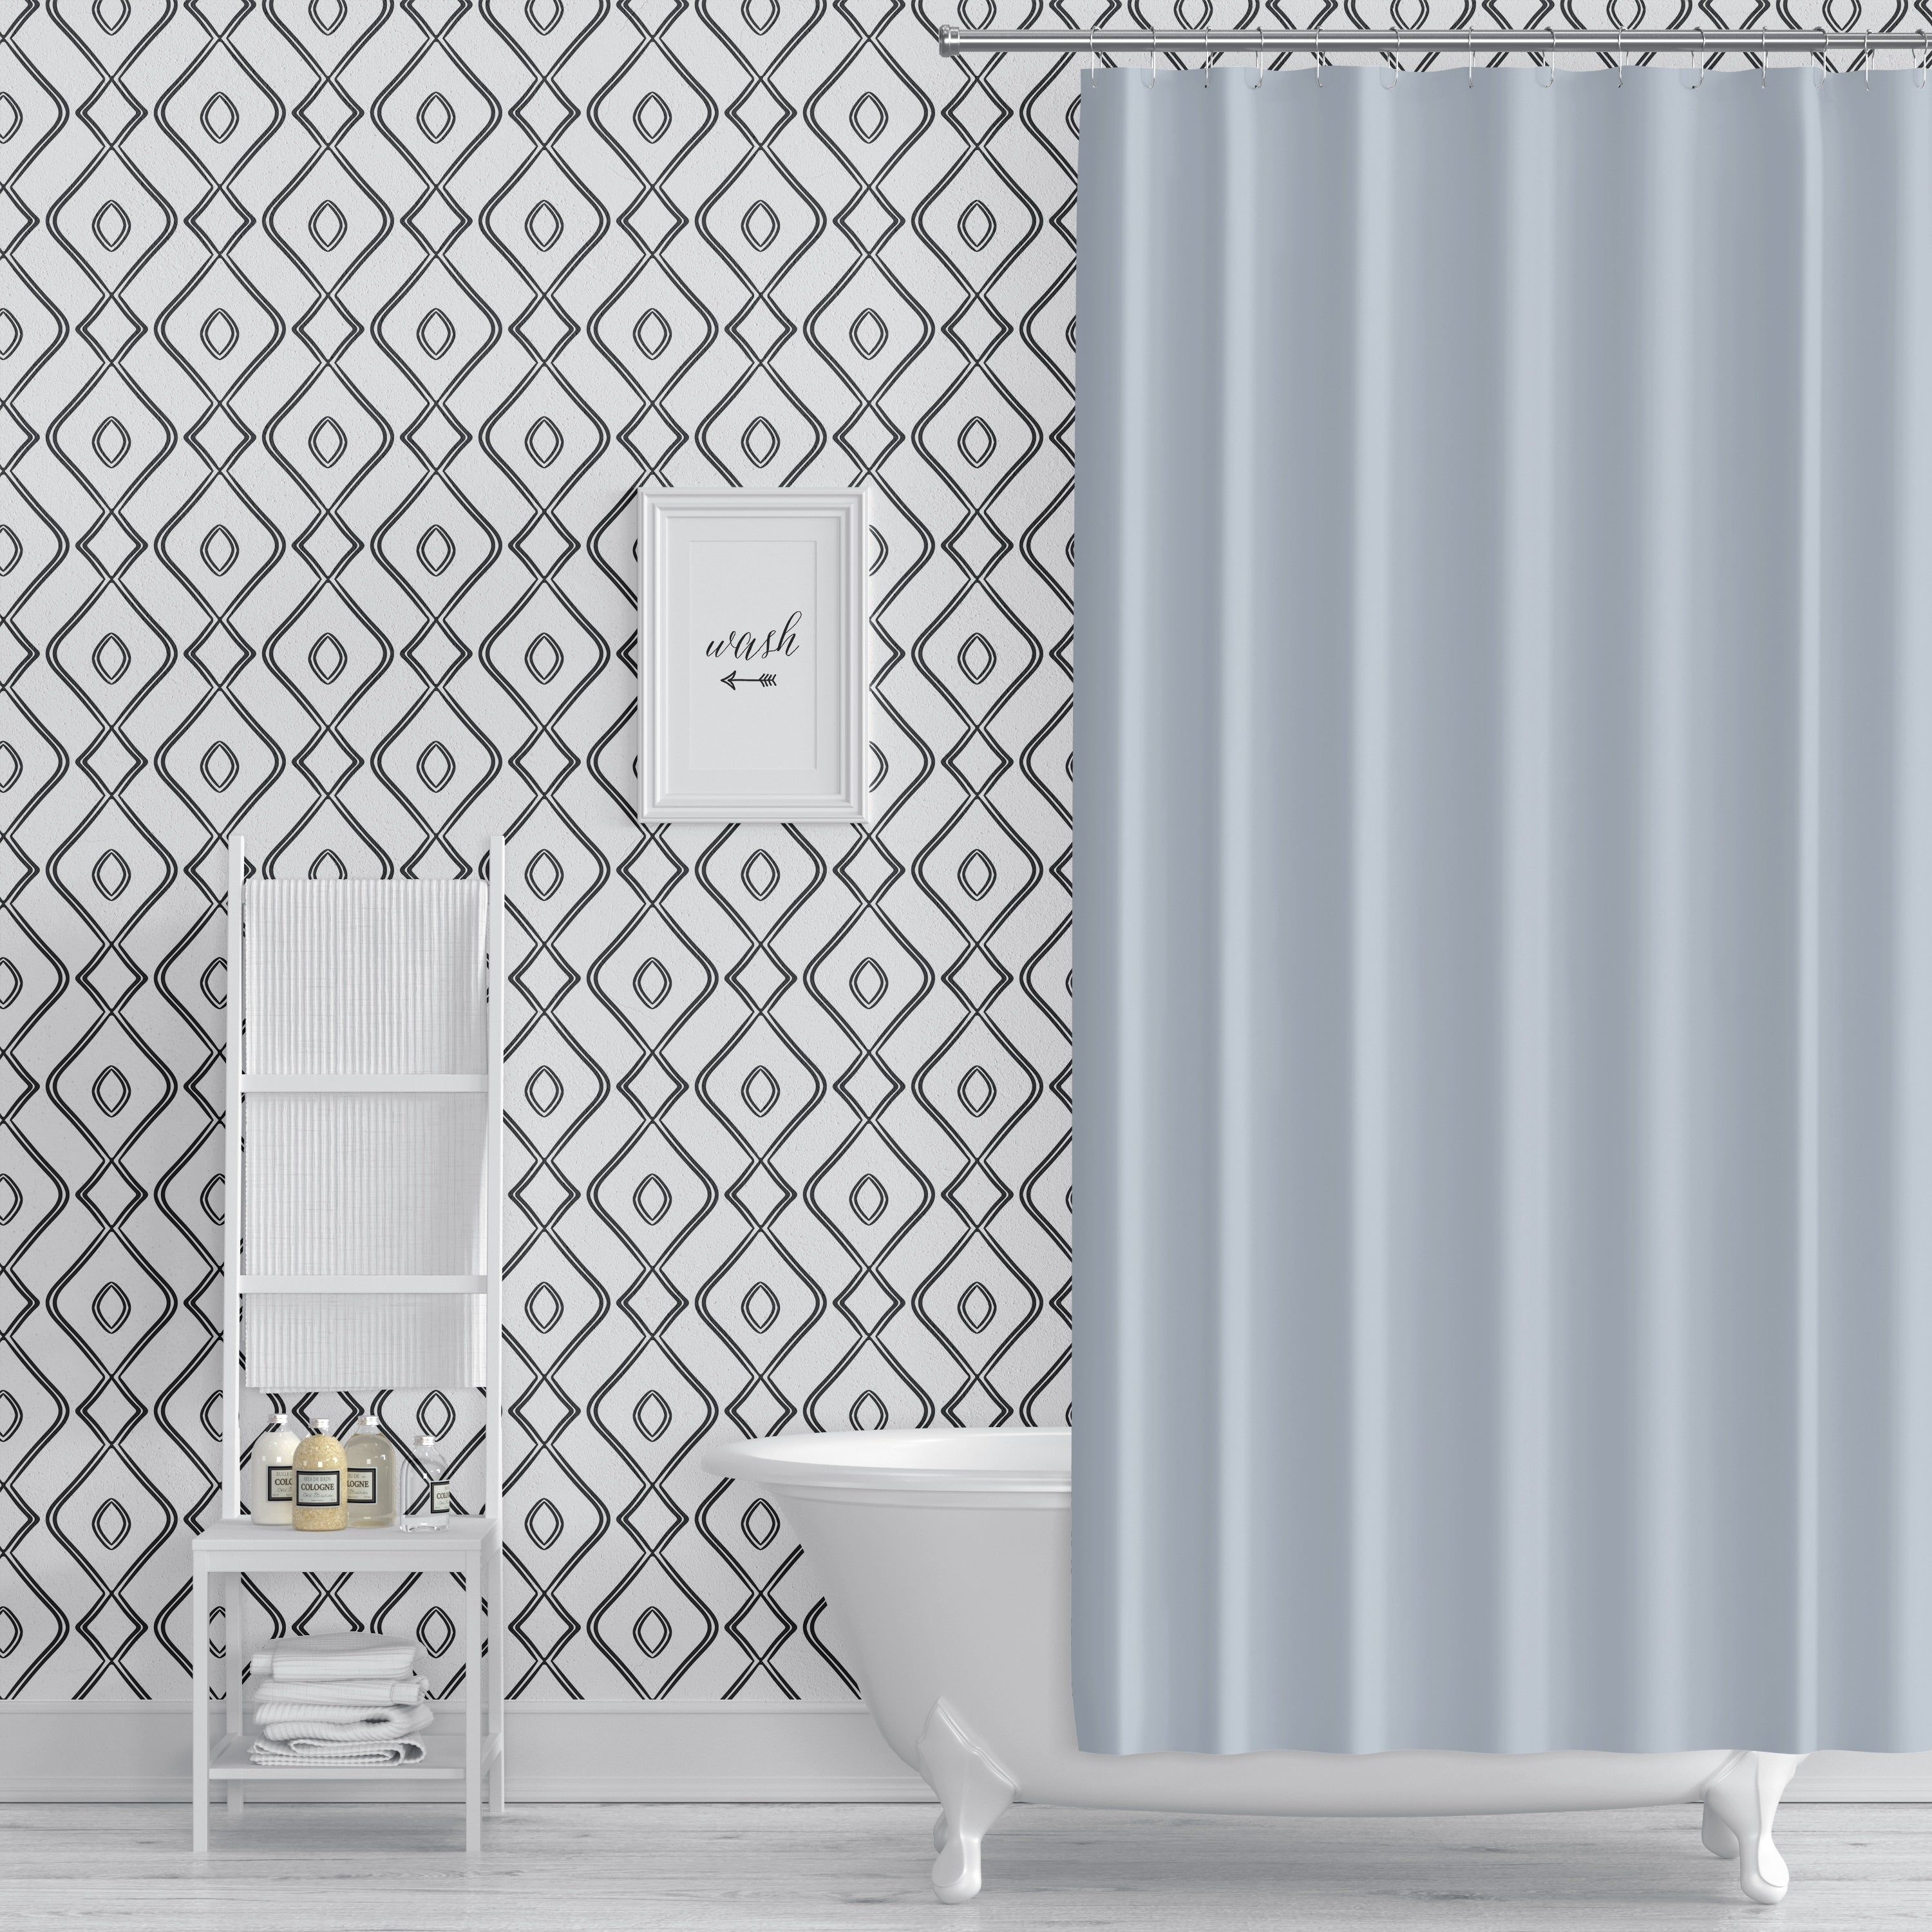 Shop Modern Ogee Black And White Peel And Stick Wallpaper By Kavka Designs Overstock 29342722